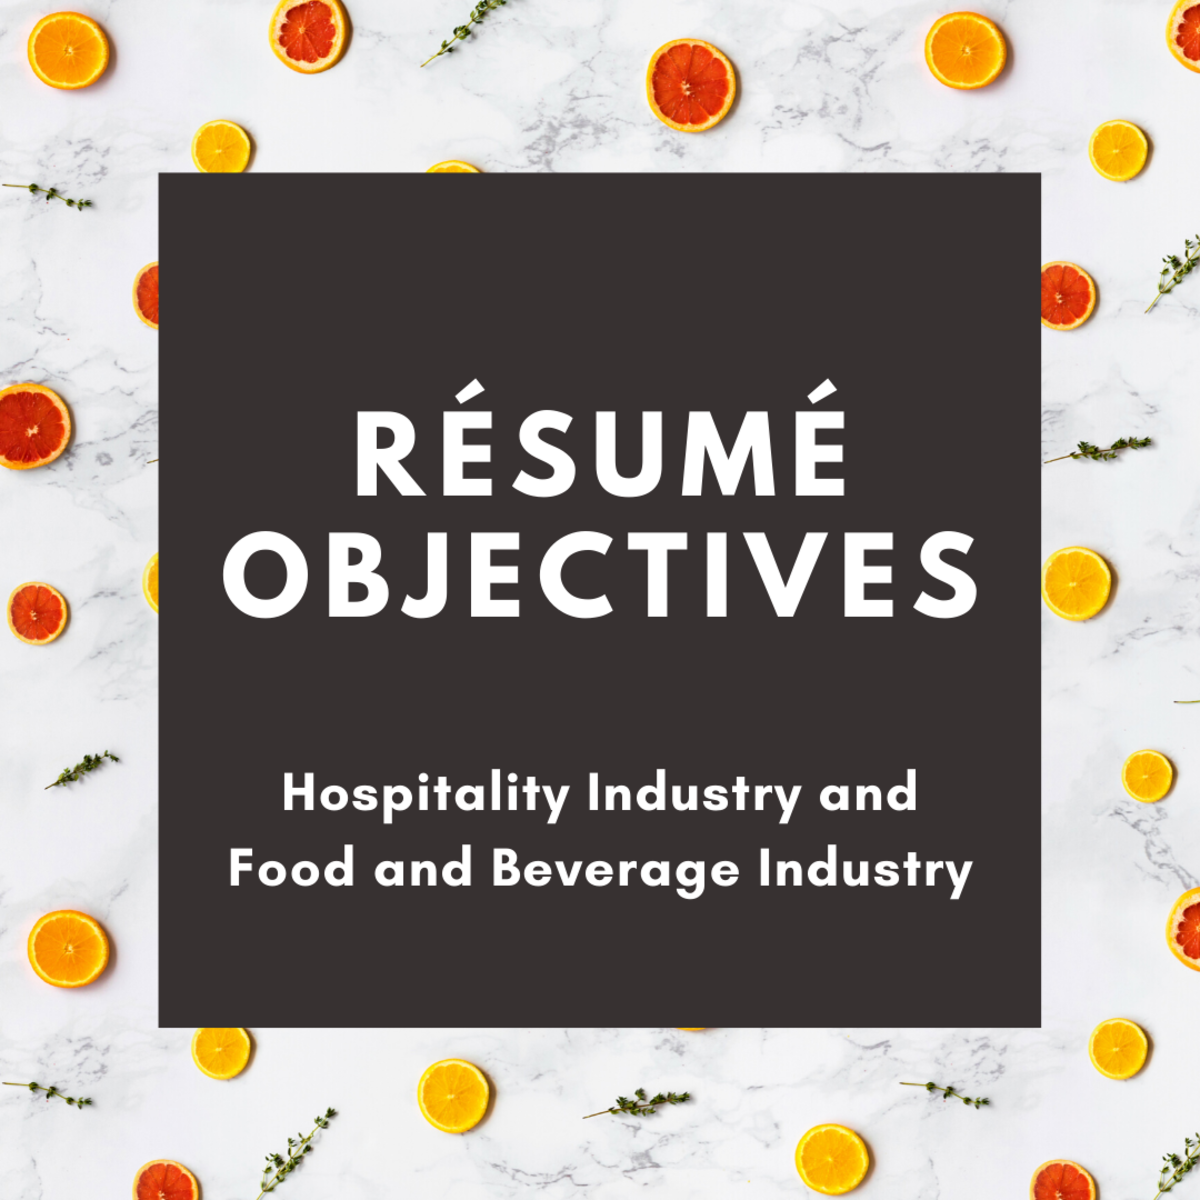 Sample Objectives For A Resume For The Hospitality Industry